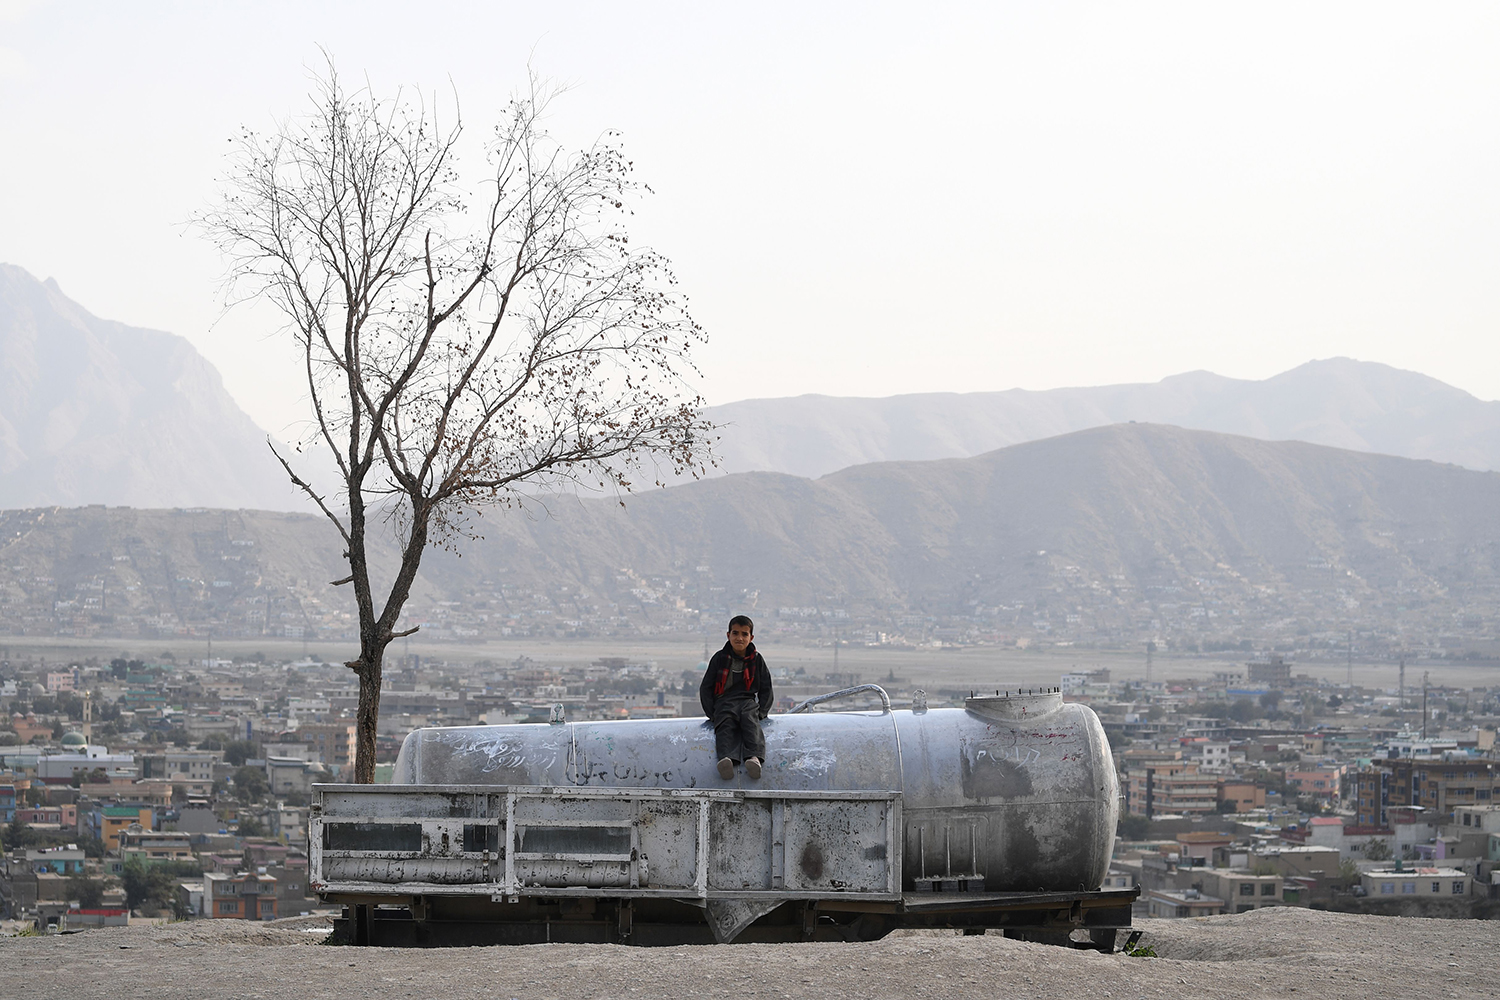 An Afghan child sits on a water tank at Nadir Khan hill in Kabul on Oct. 1. SAJJAD HUSSAIN/AFP/Getty Images